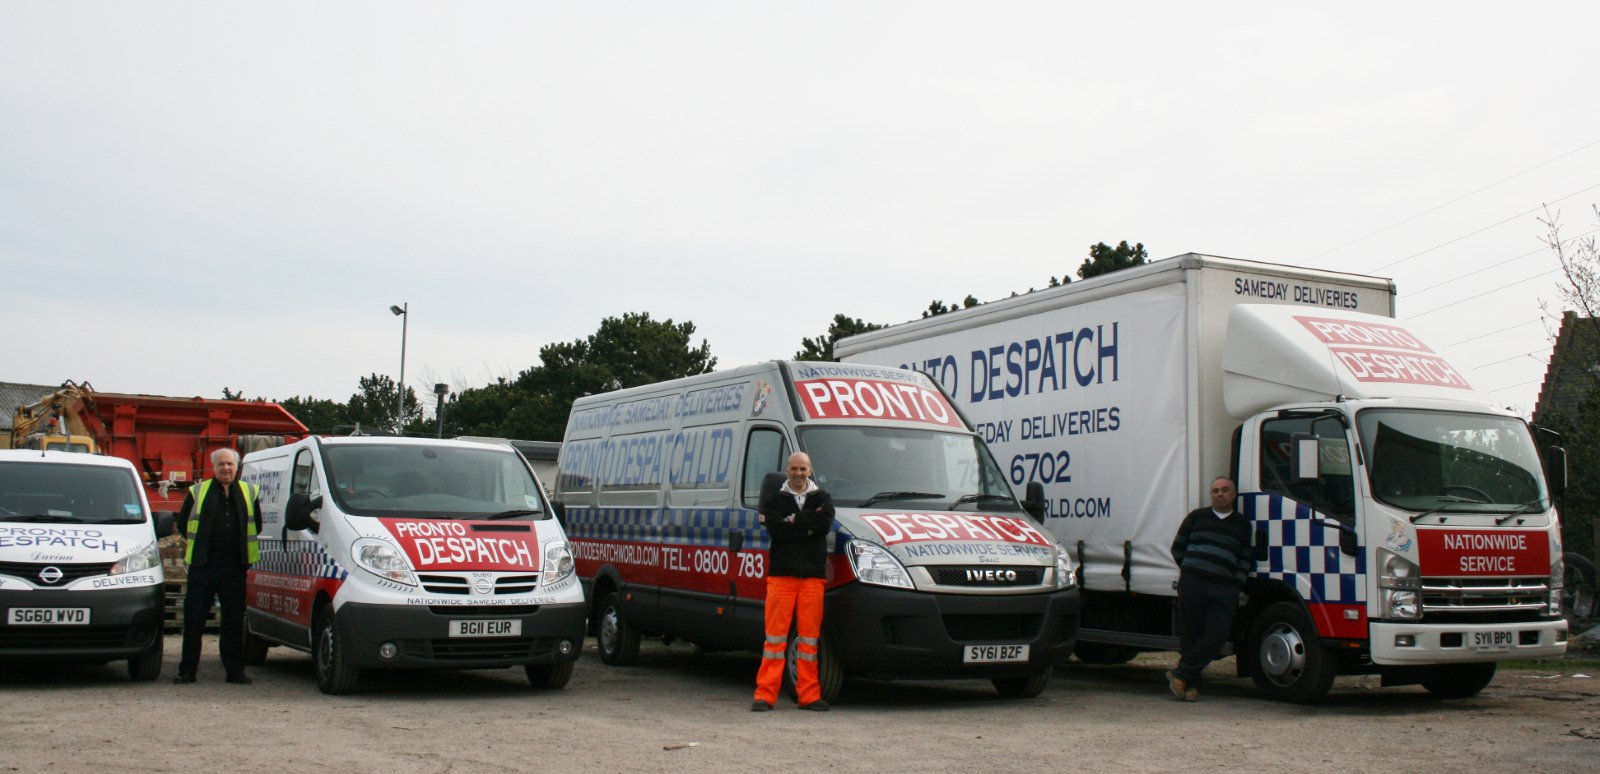 Pronto Despatch fleet (4) (002)